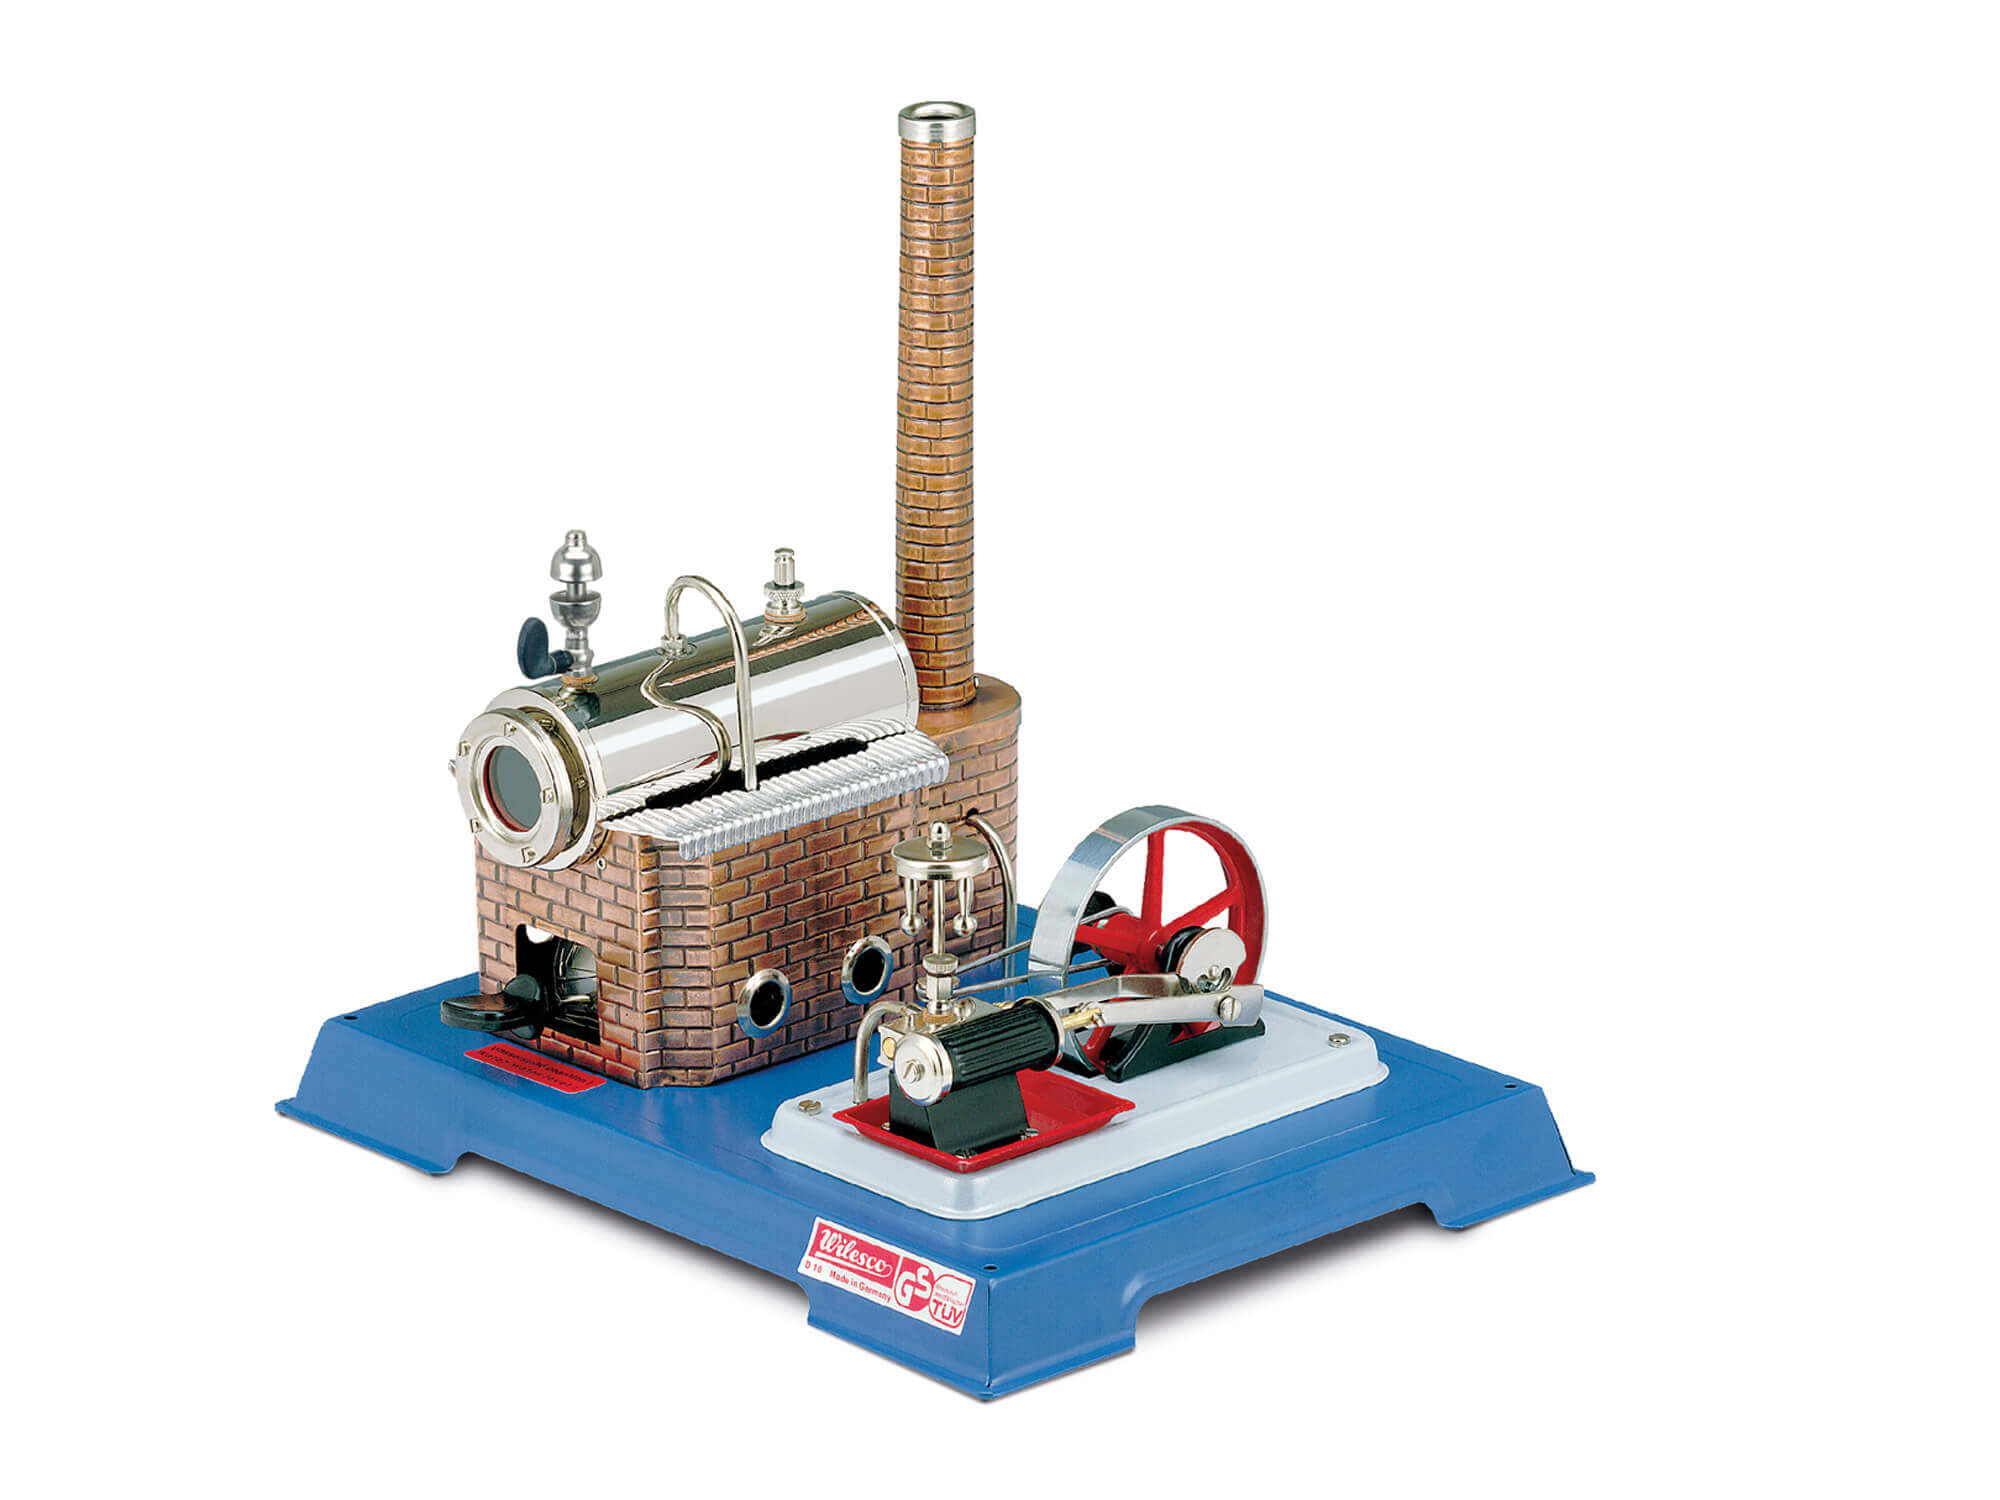 Wilesco steam engines models kits and mobile – Diagram Of Steam Steam Engine For Movement